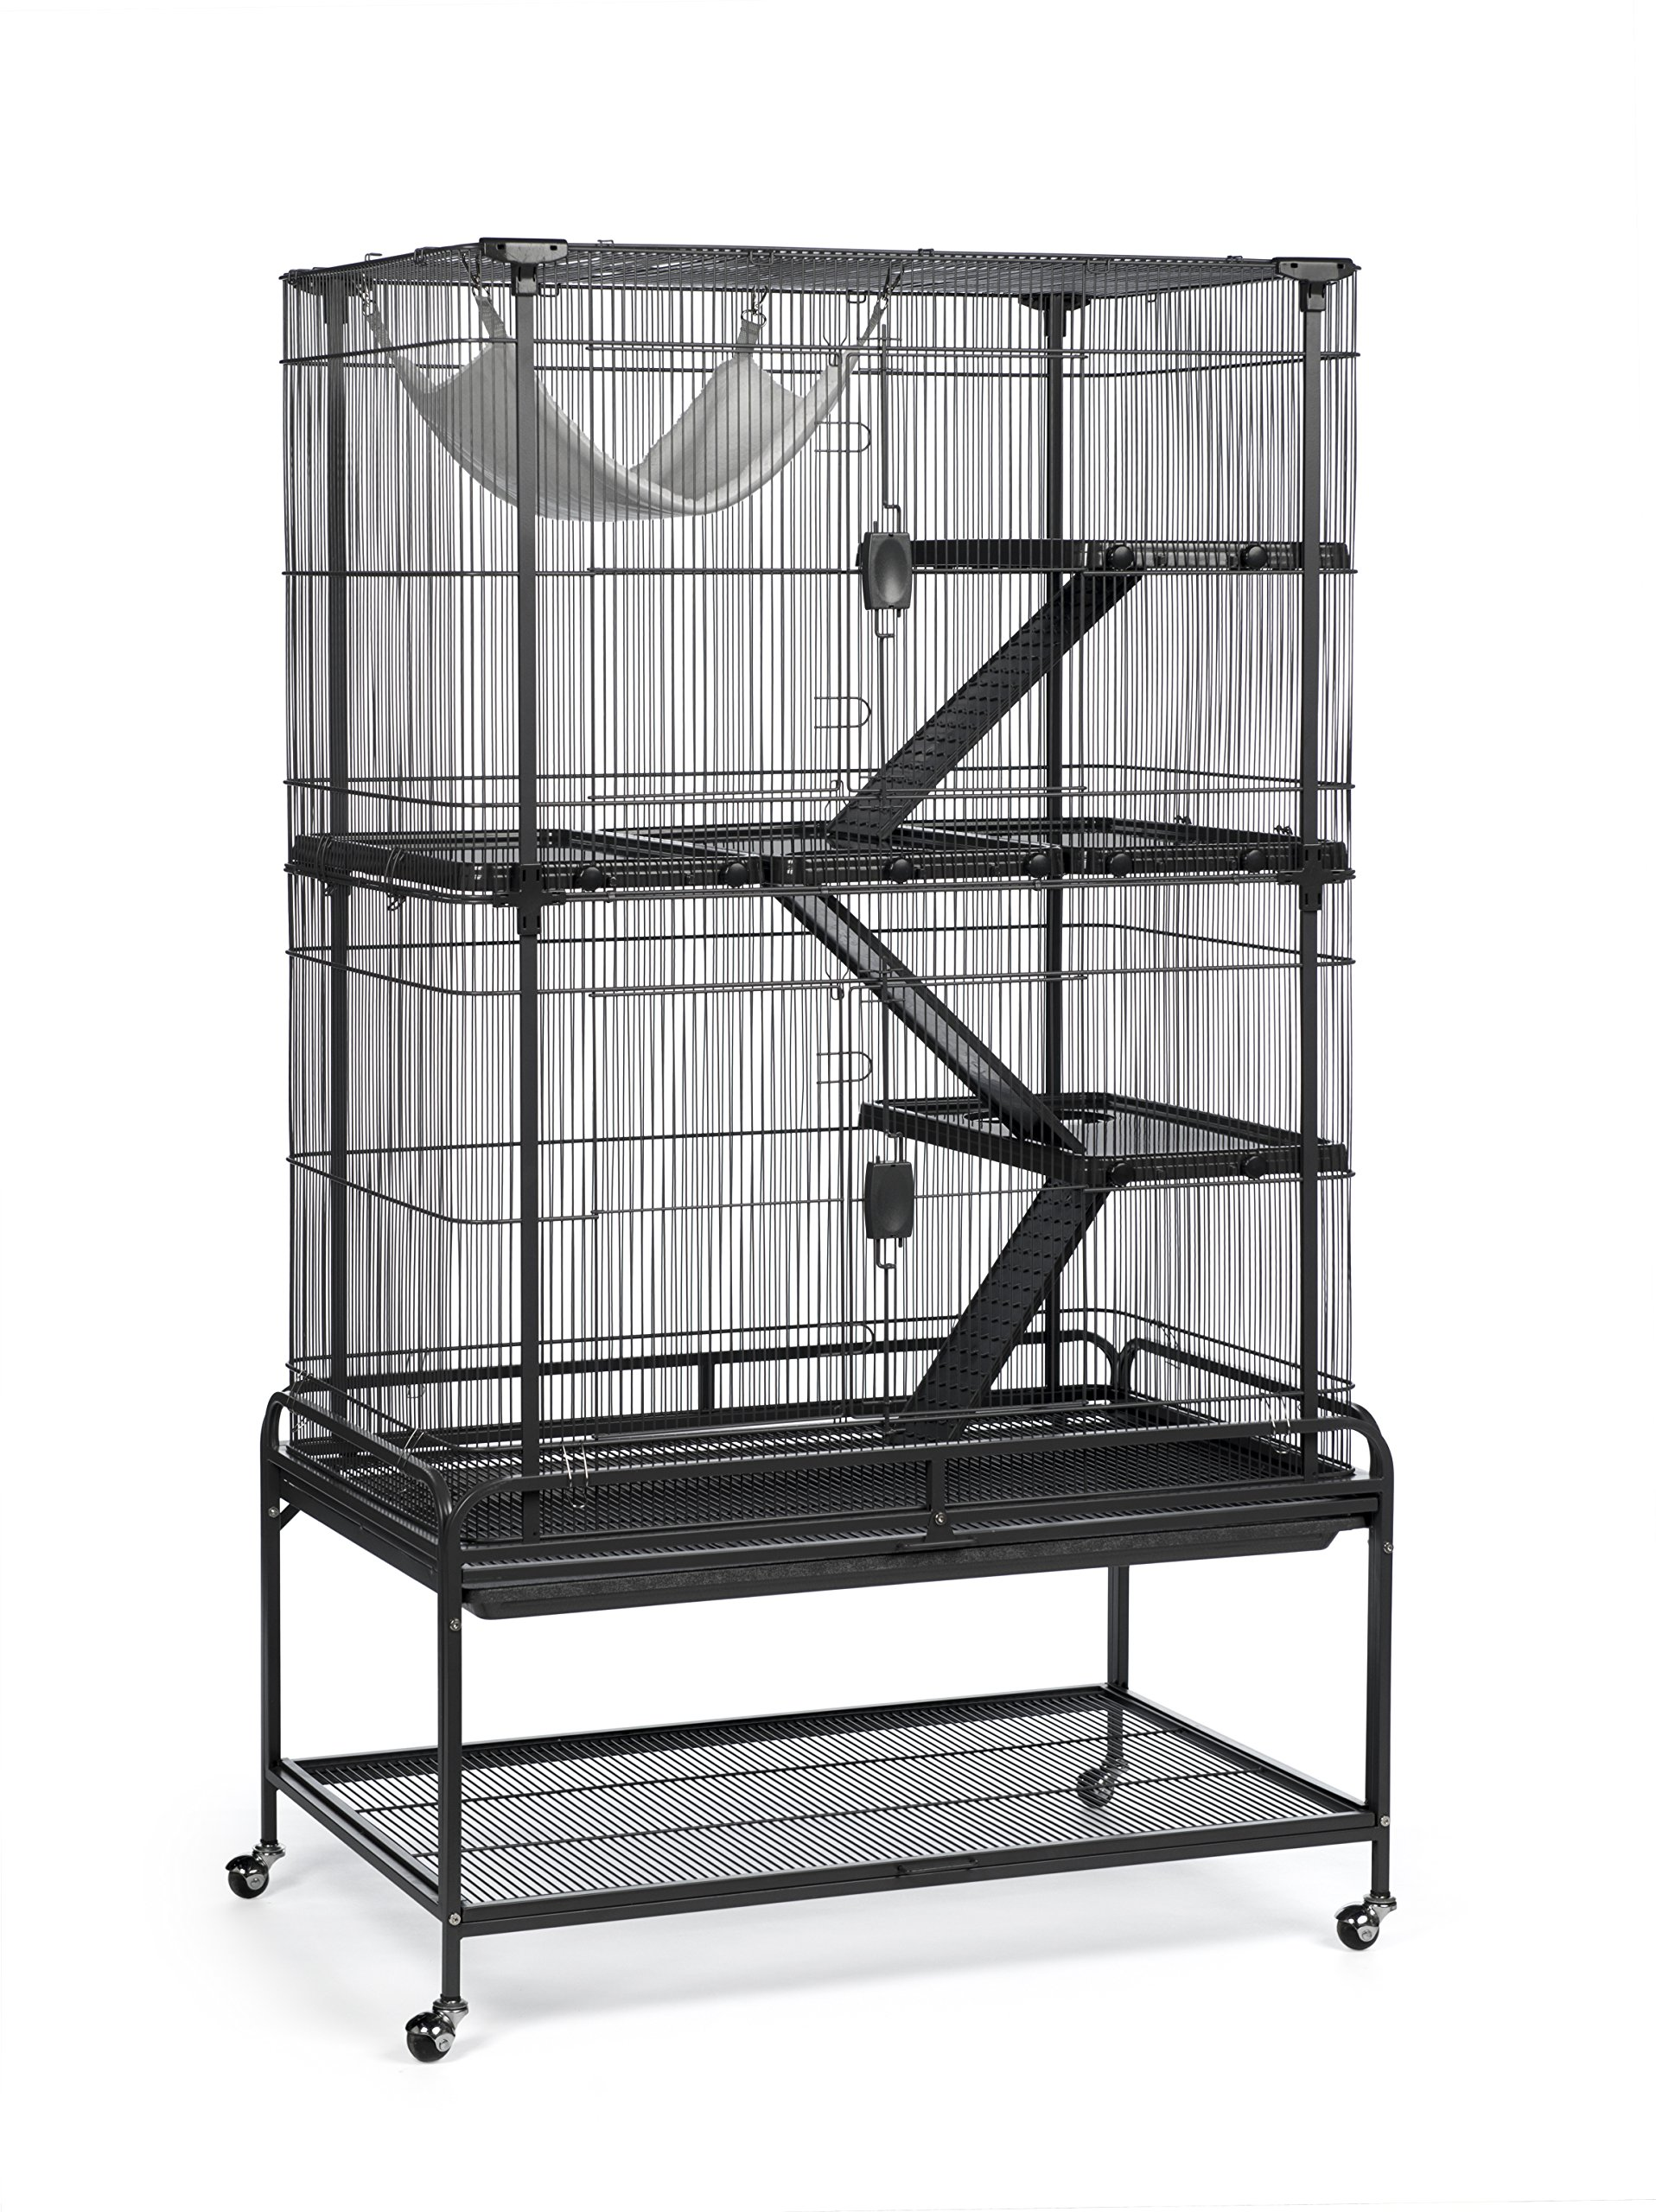 Prevue Pet Products 484 Deluxe Critter Cage, Dark Gray by Prevue Pet Products